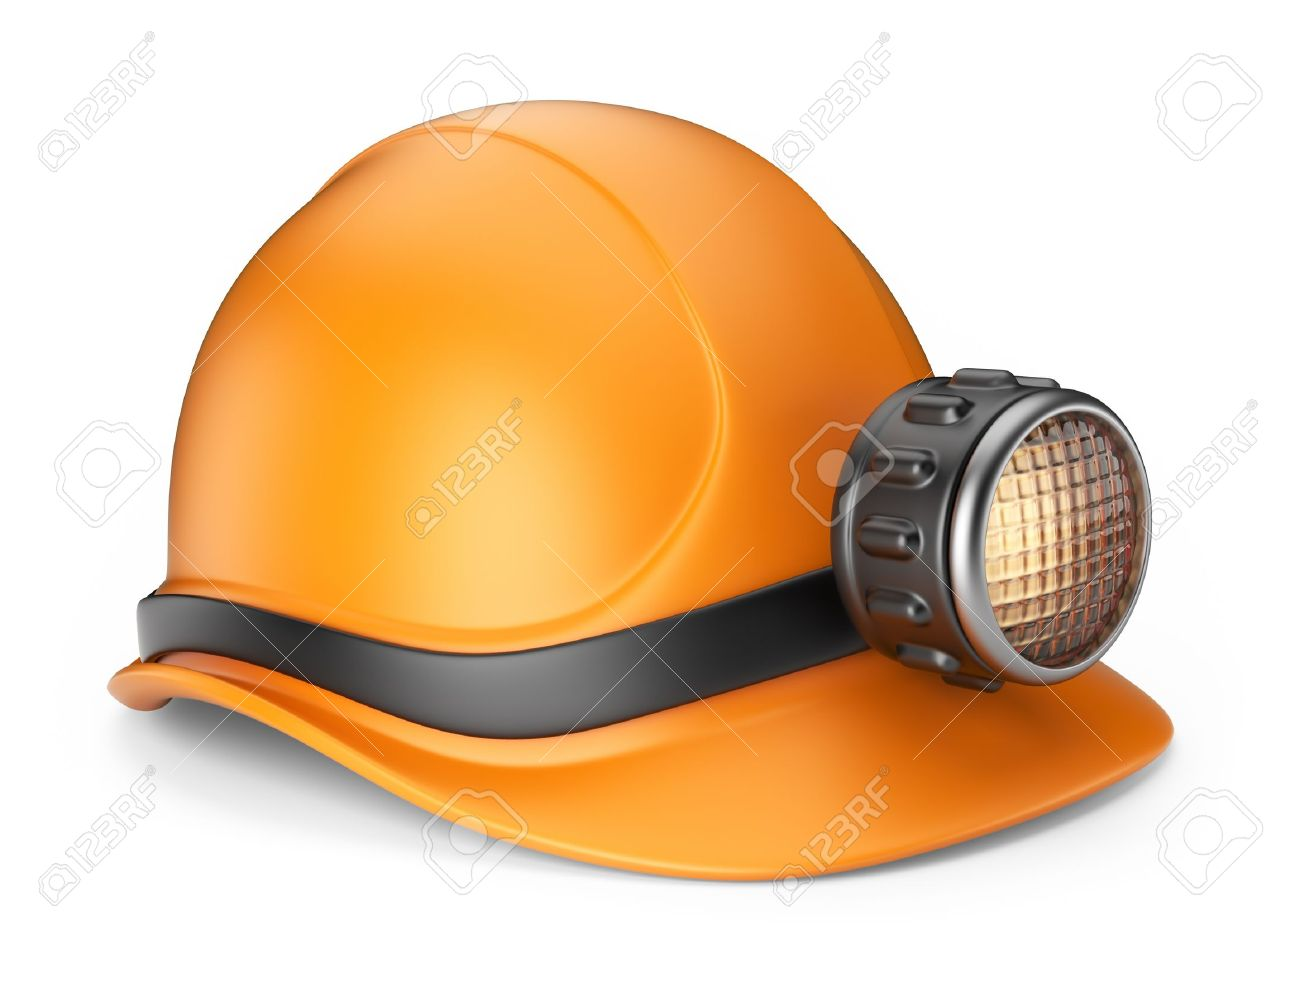 Miner helmet with lamp 3D Icon isolated on white background - 15940116